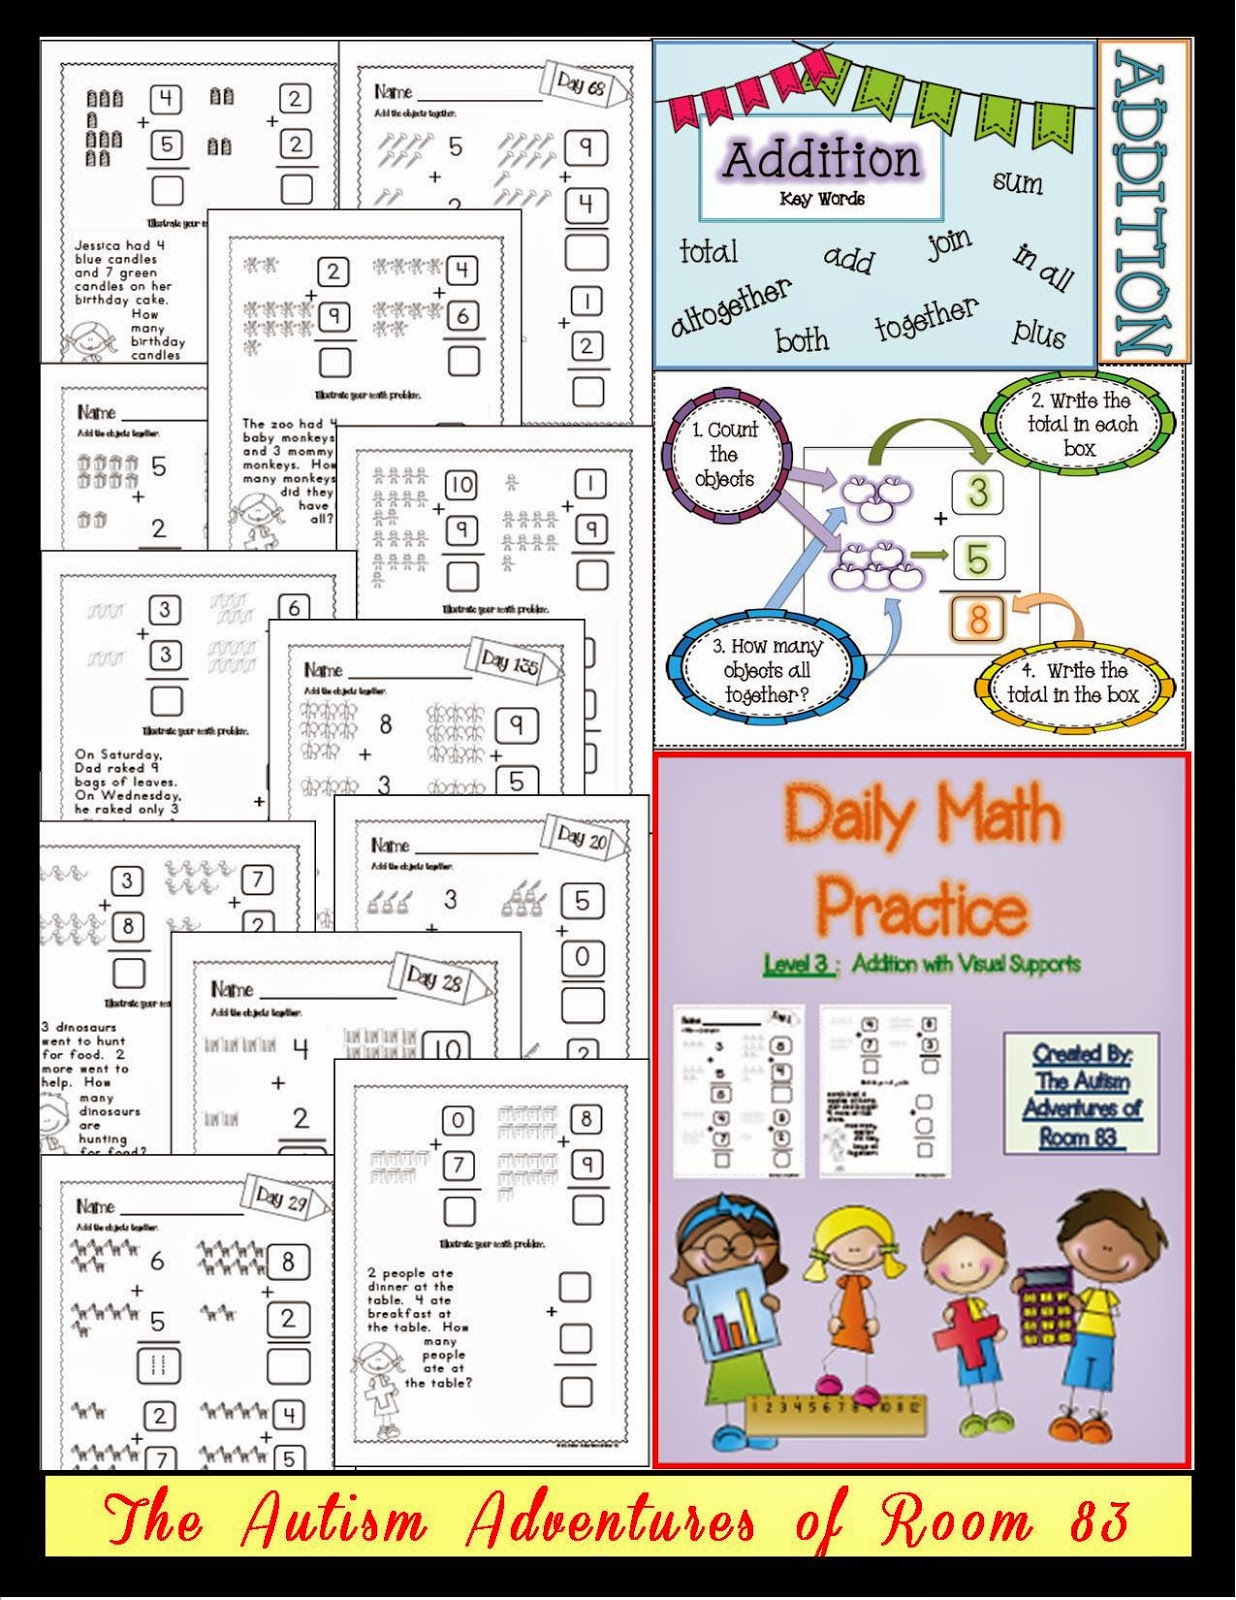 Daily Math Practice Level 3 Addition With Visuals The Autism